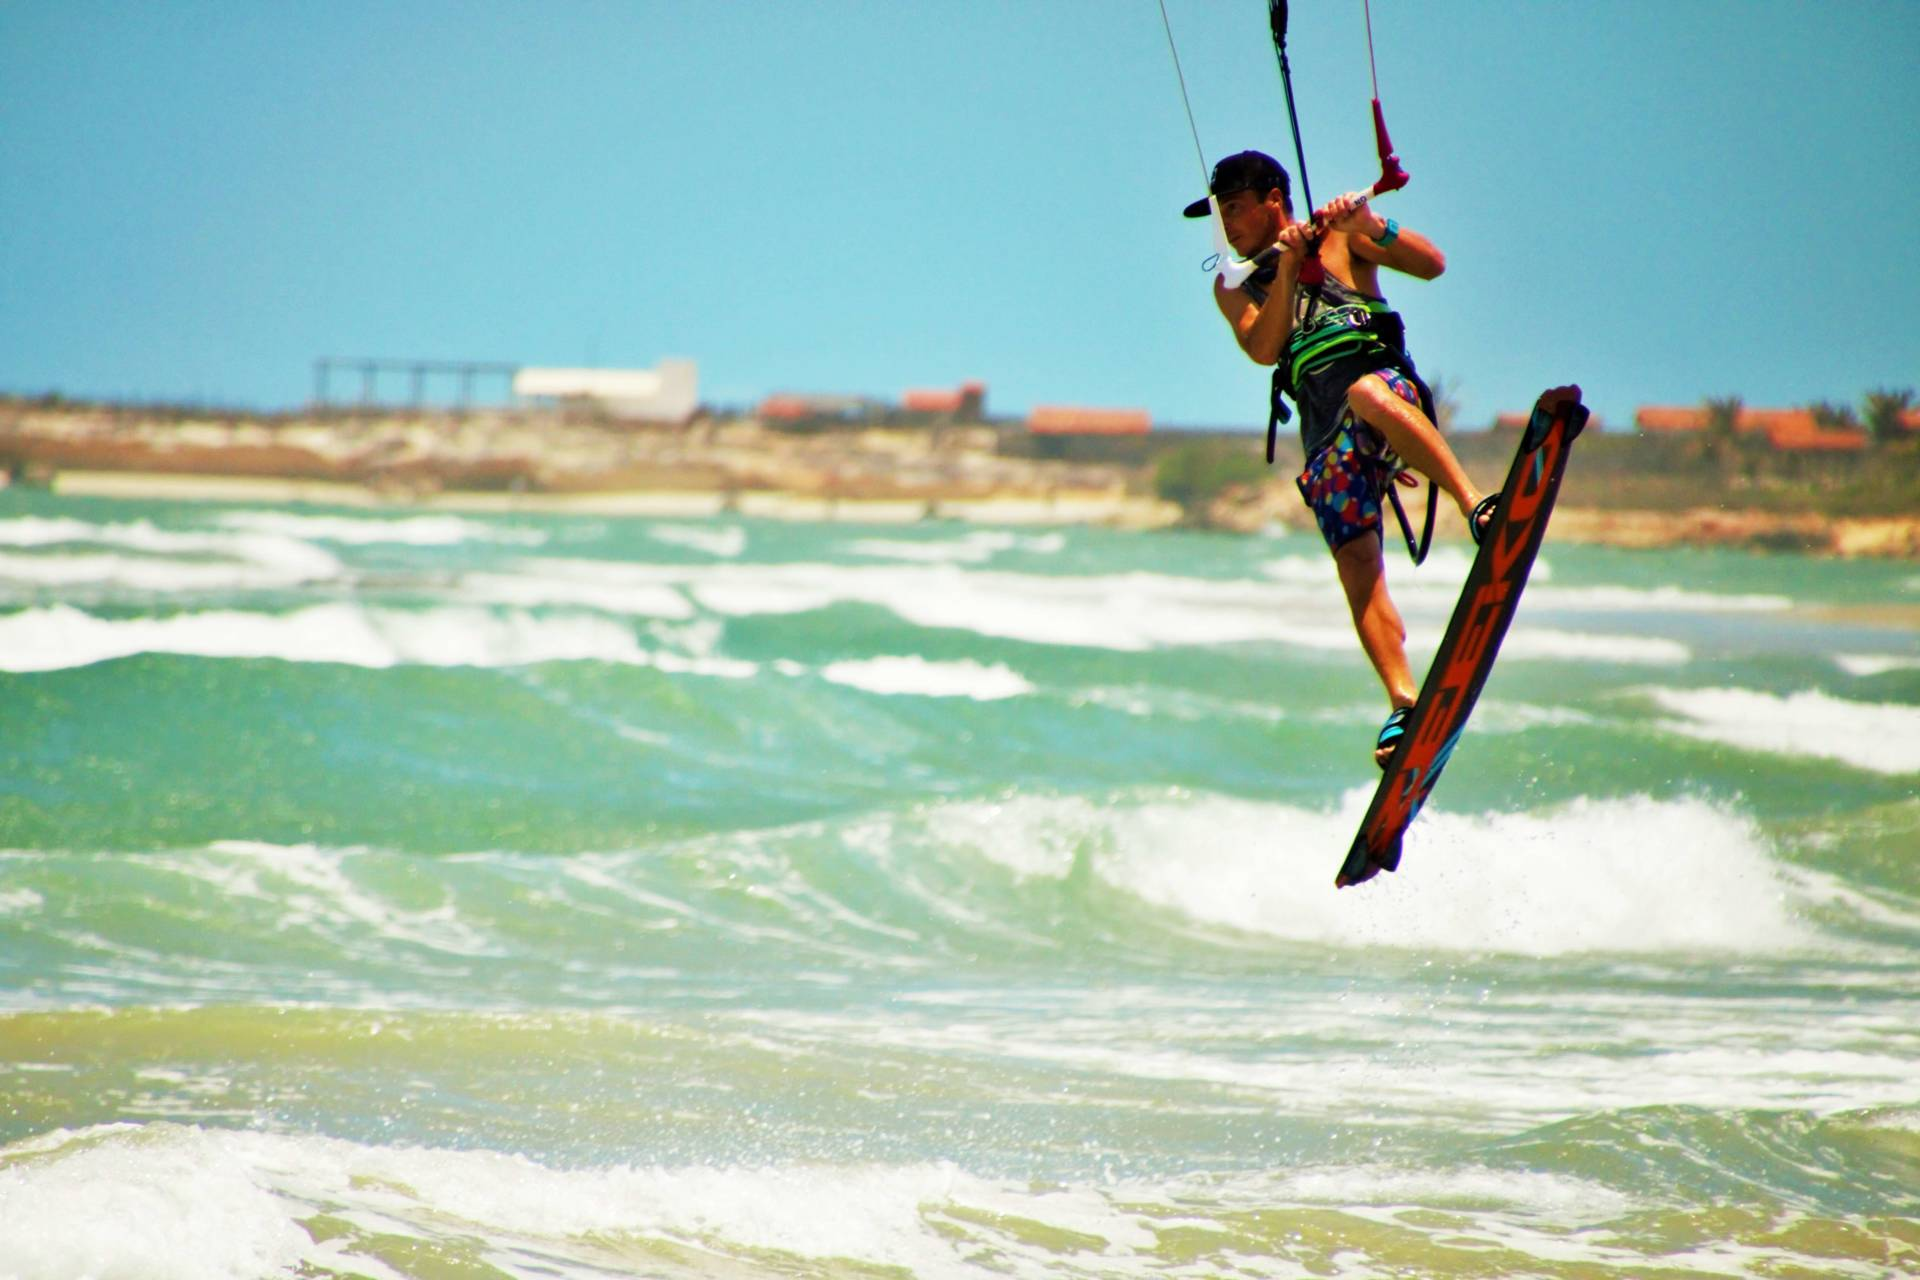 Pontal de maceio kiteboarding